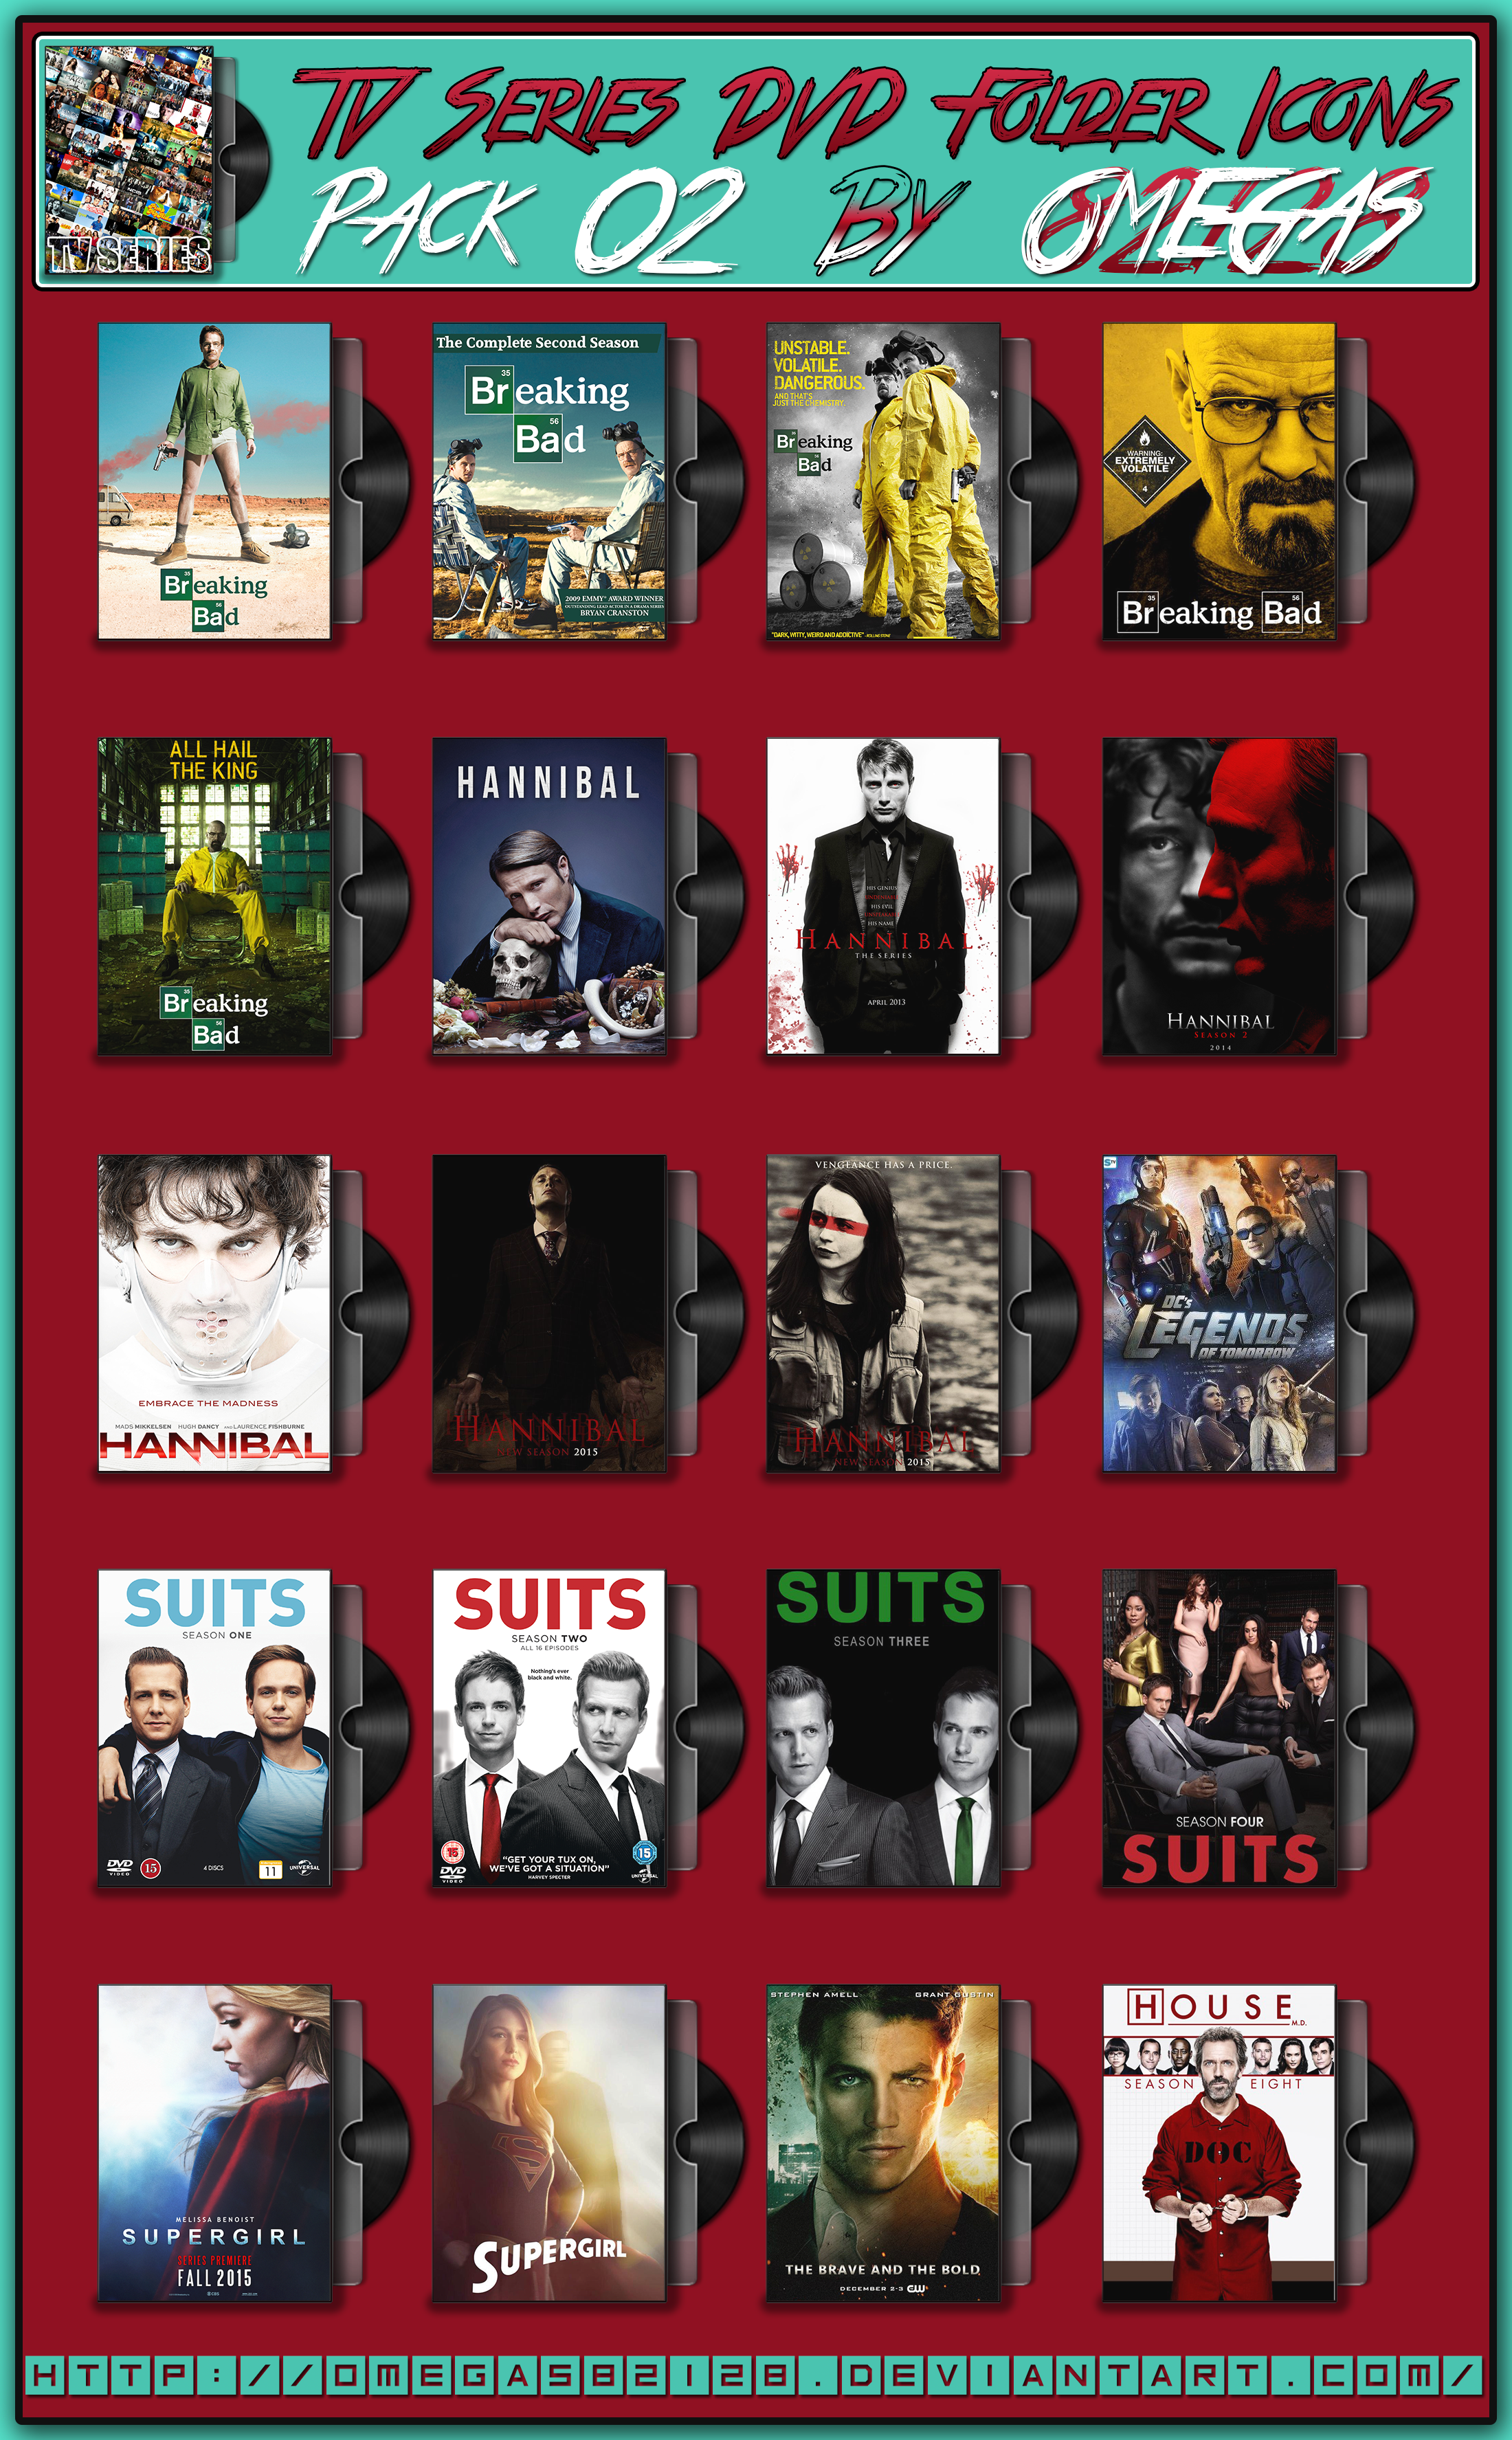 TV Series DVD Folder Icons Pack 02 by Omegas82128 on DeviantArt